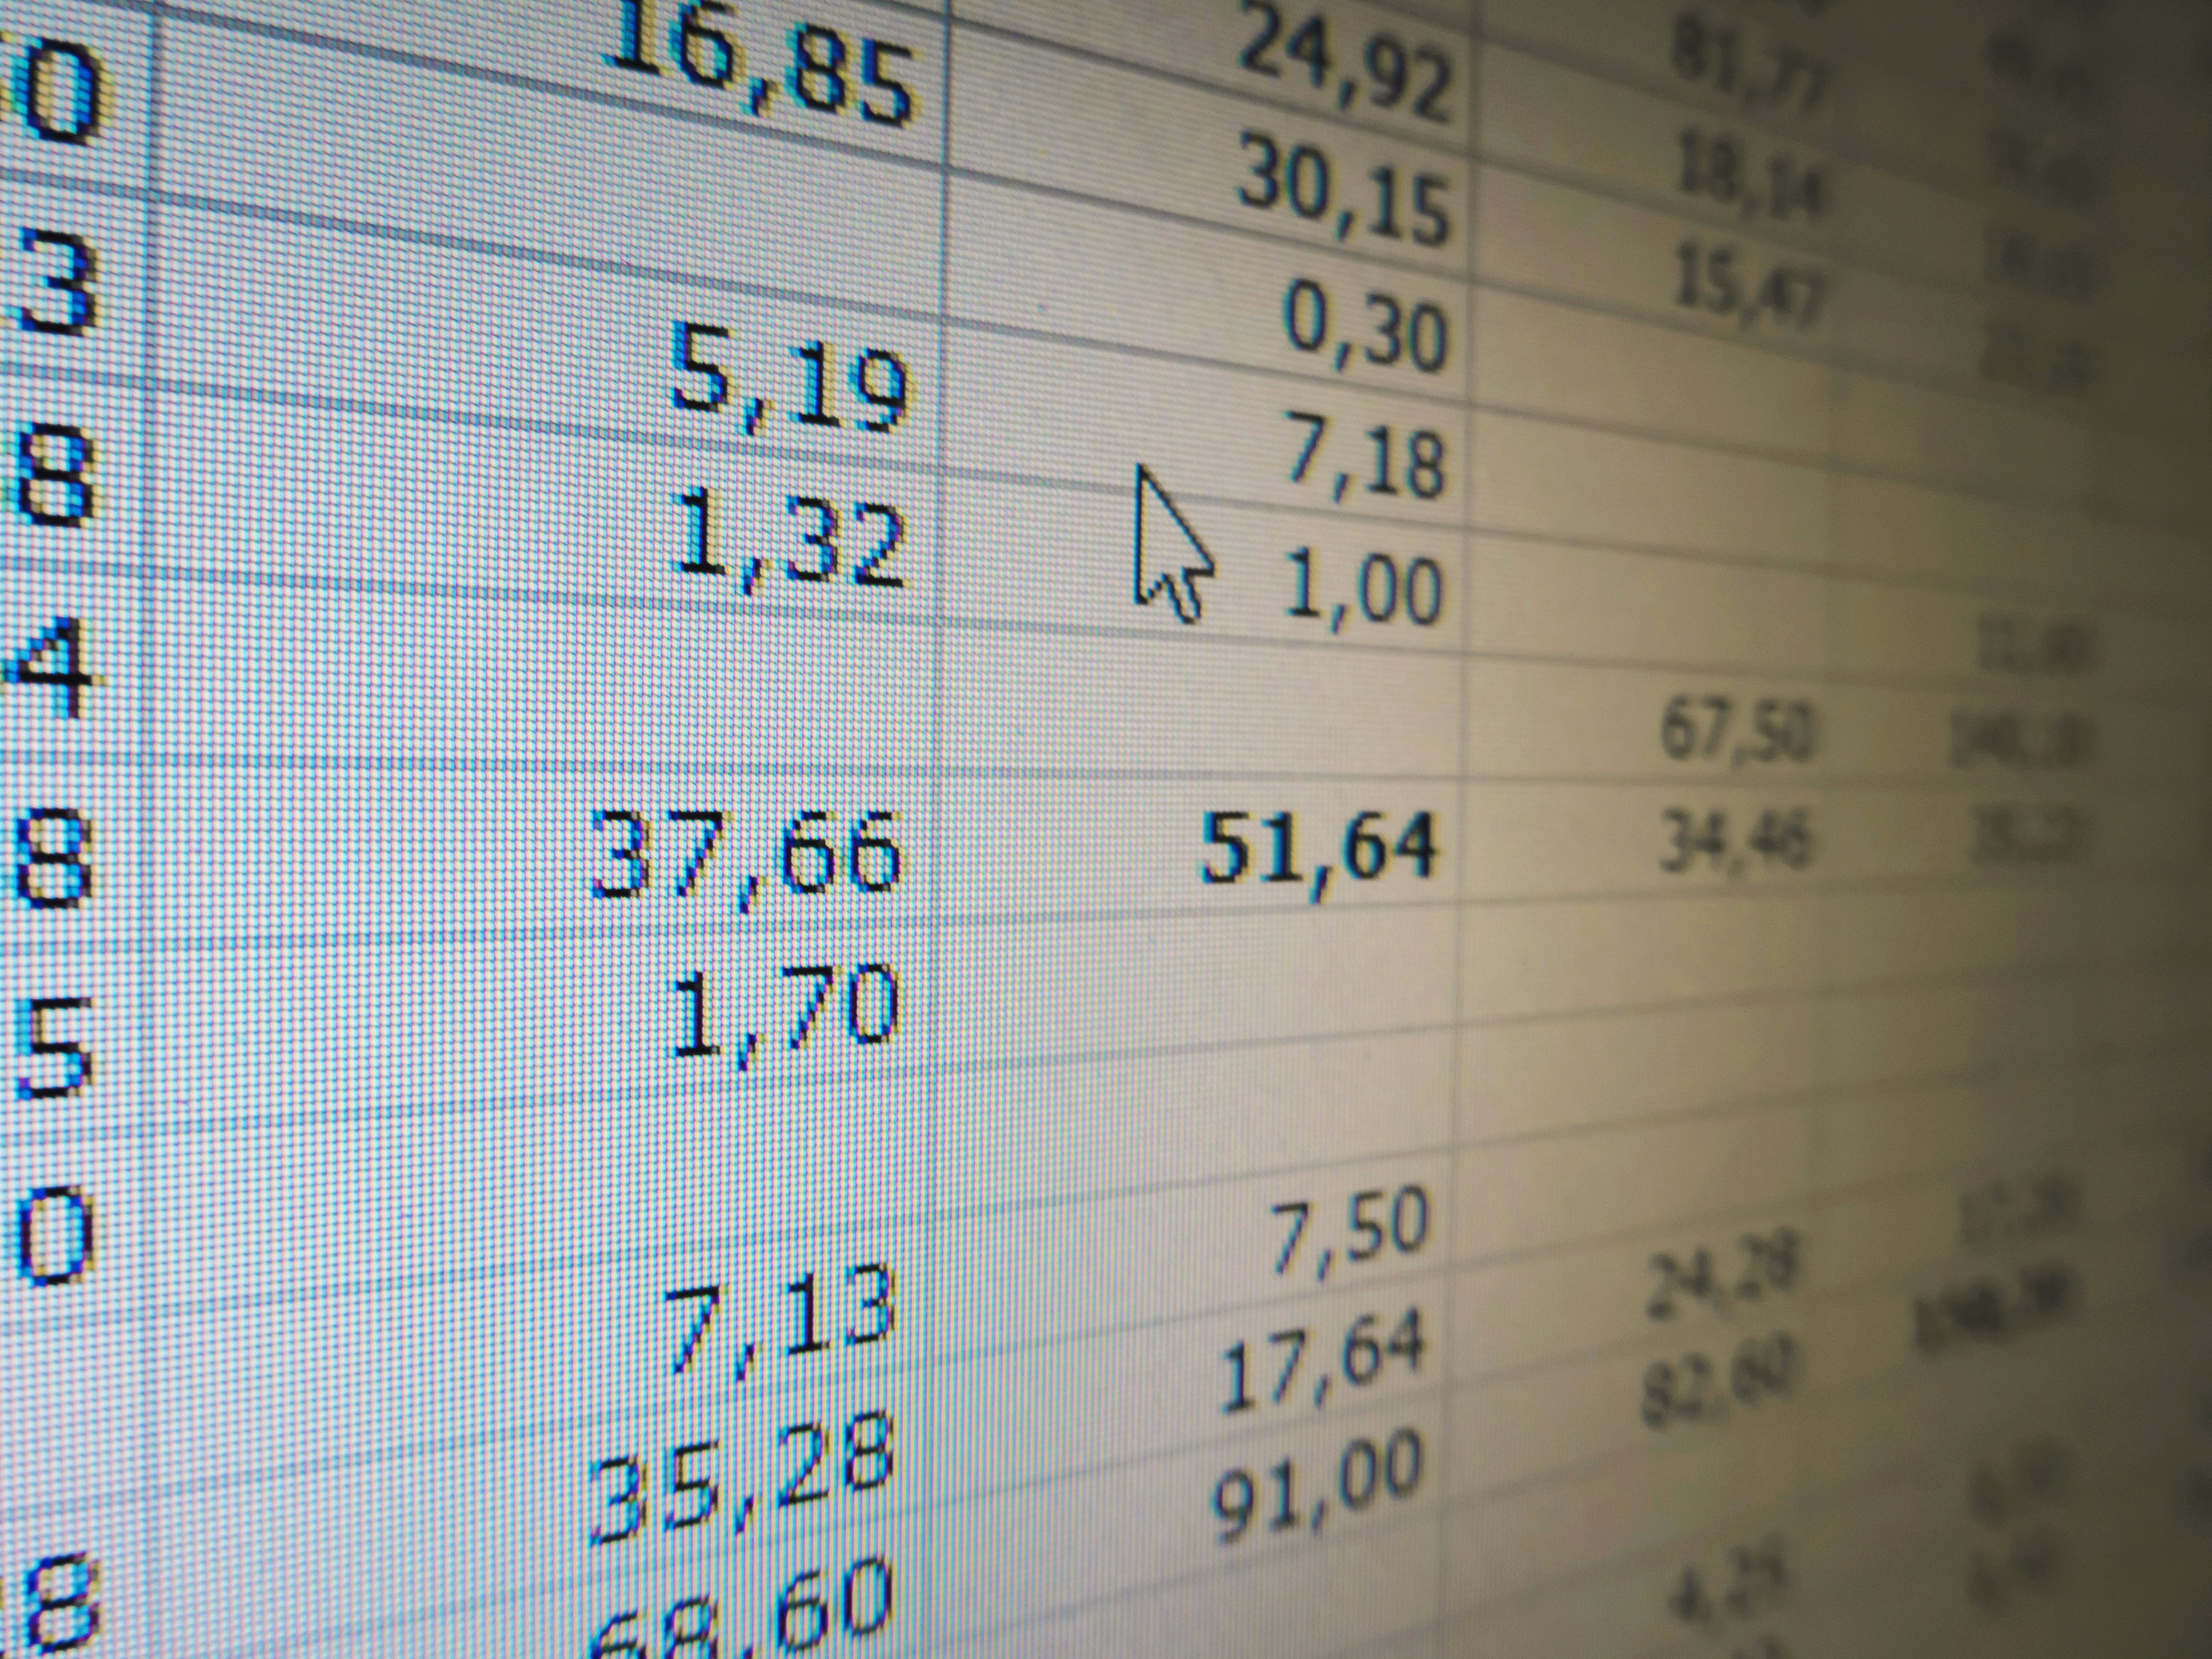 Learning Excel Isn't Just For Finance Profressionals, It Can Boost Intended For Learning Excel Spreadsheets